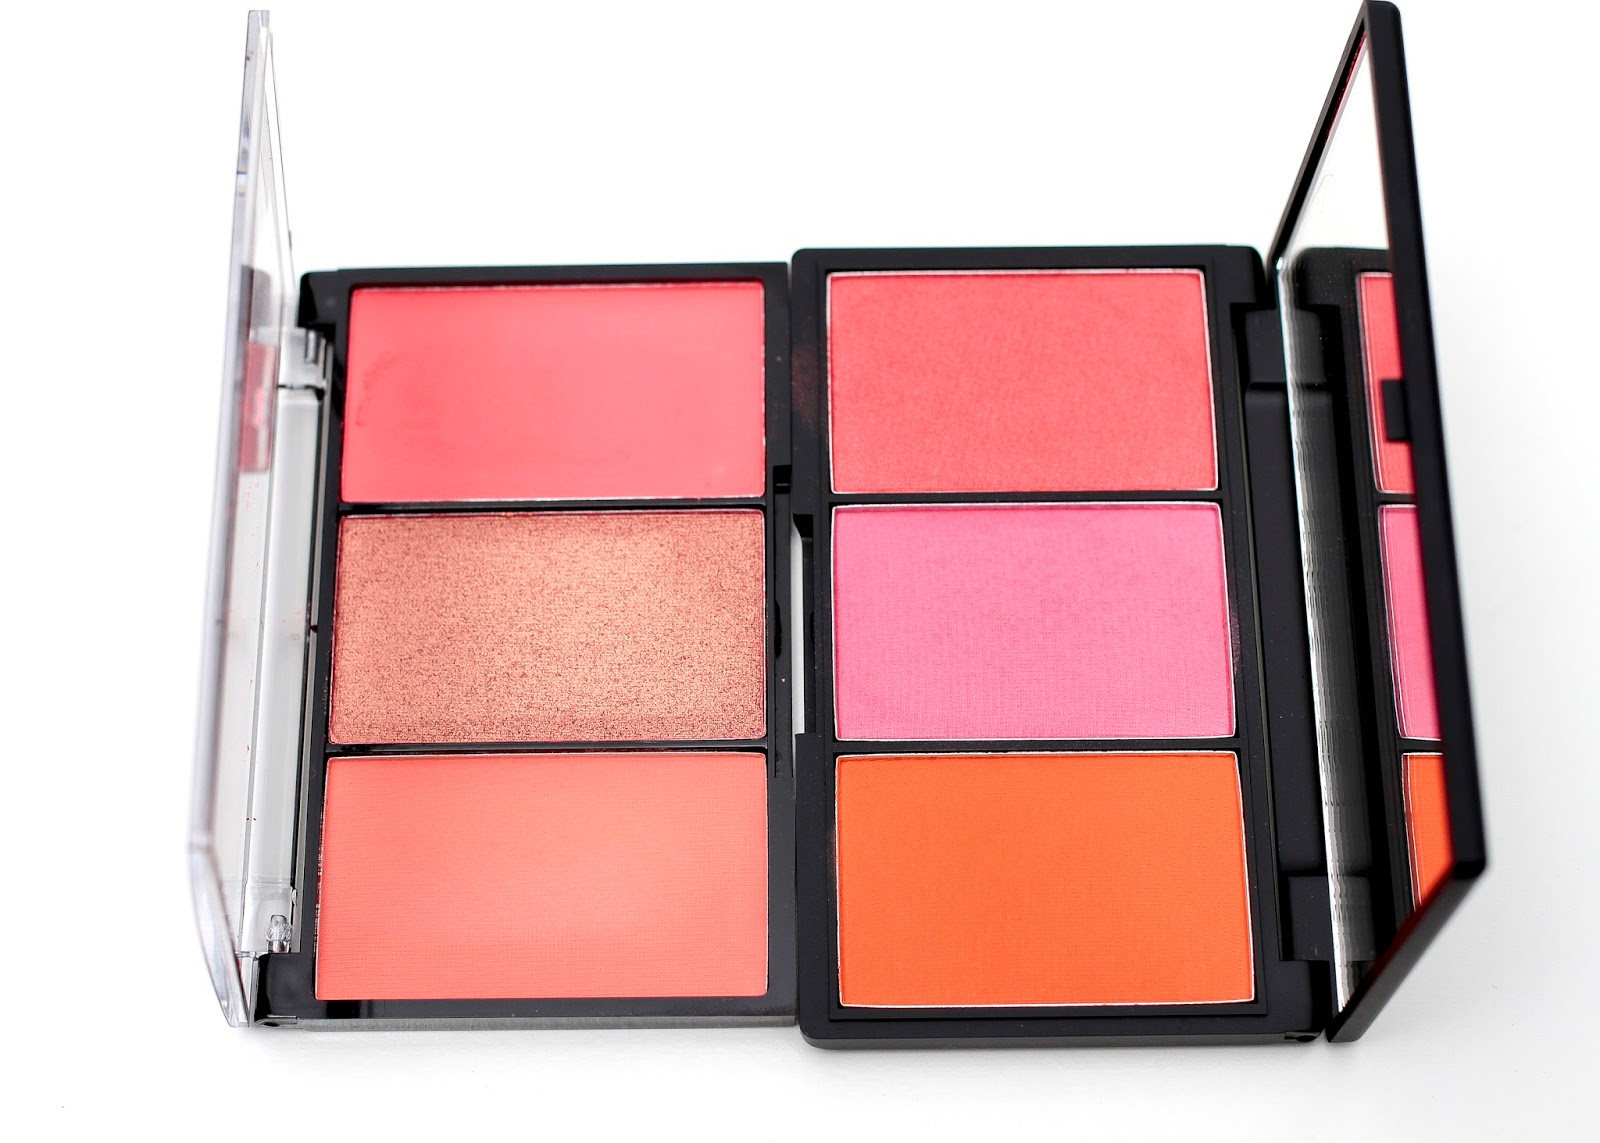 BYS 3 Blush Palette in Coral Me In next to Sleek blush by 3 in pumpkin